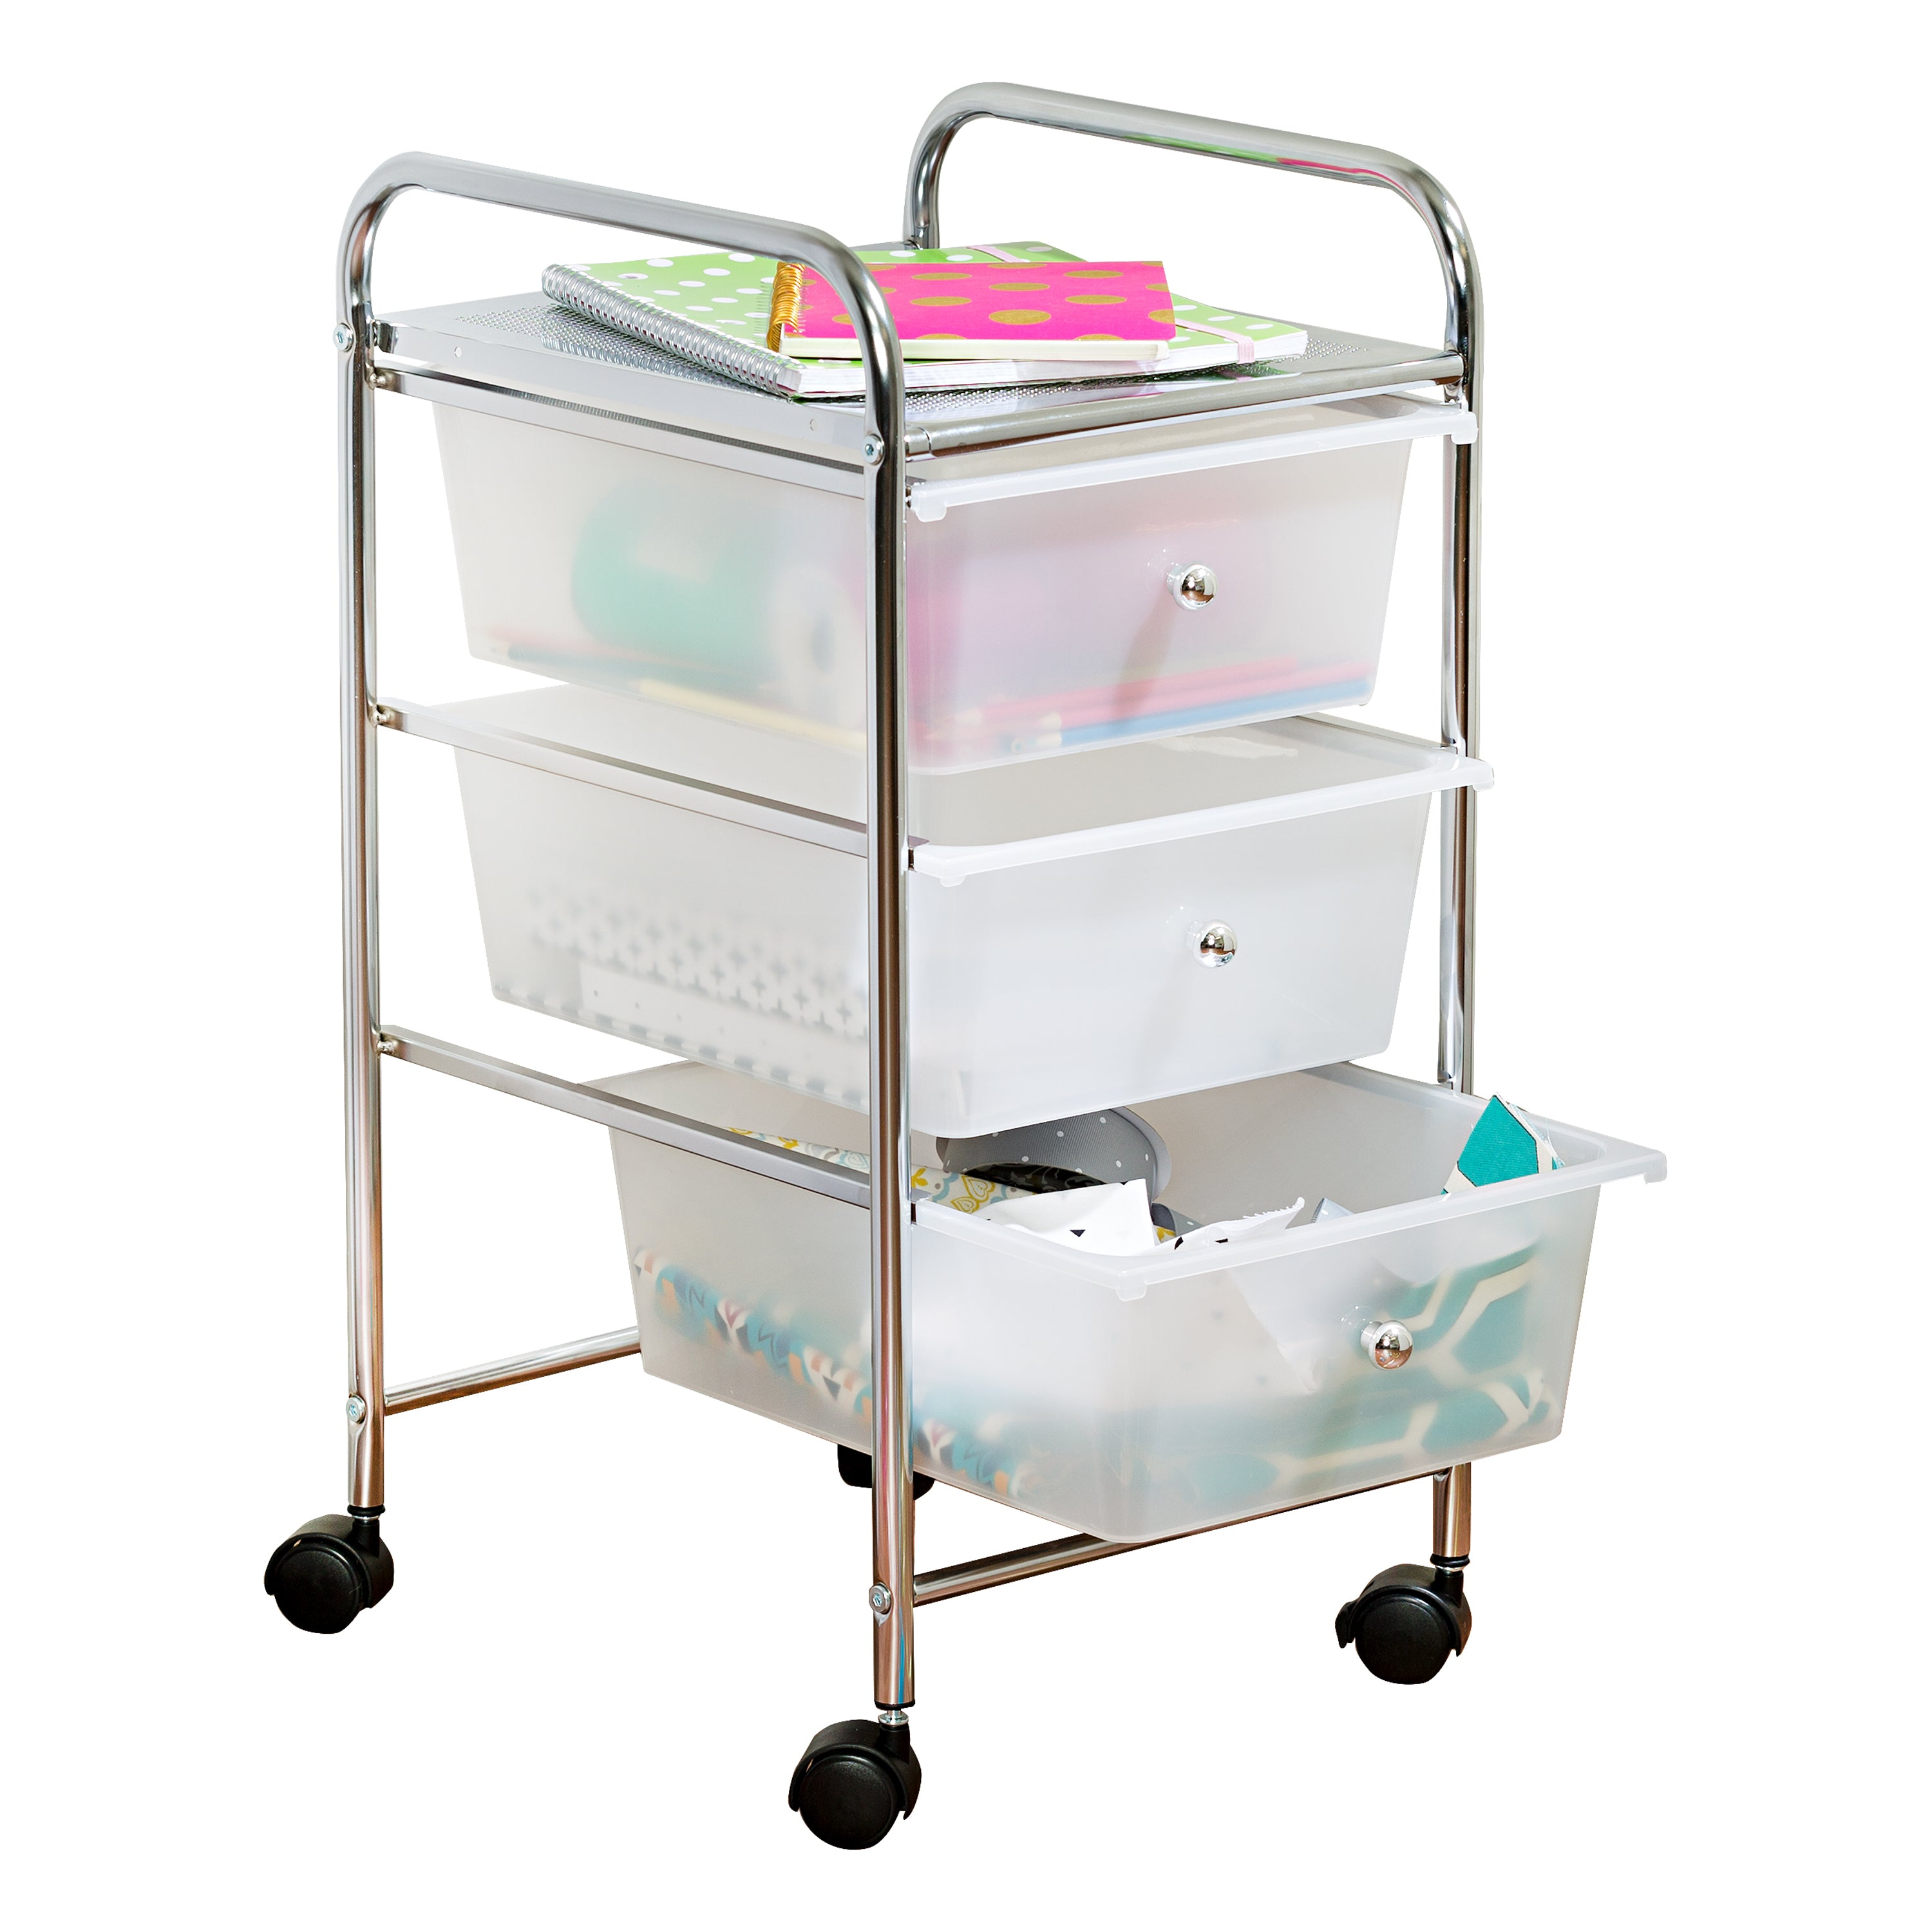 cubes drawers maidmax for rolling clothes and brakes organizer cart tools black storage papers collapsible with wheels product drawer